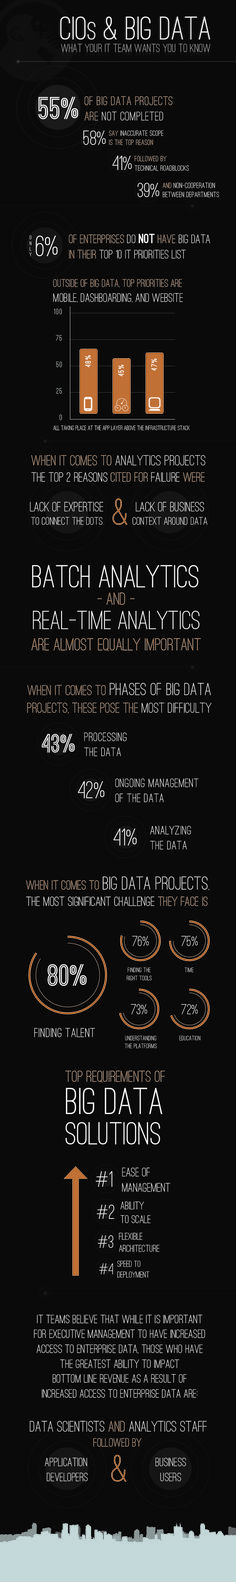 What IT Teams Want CIOs to Know About Big Data